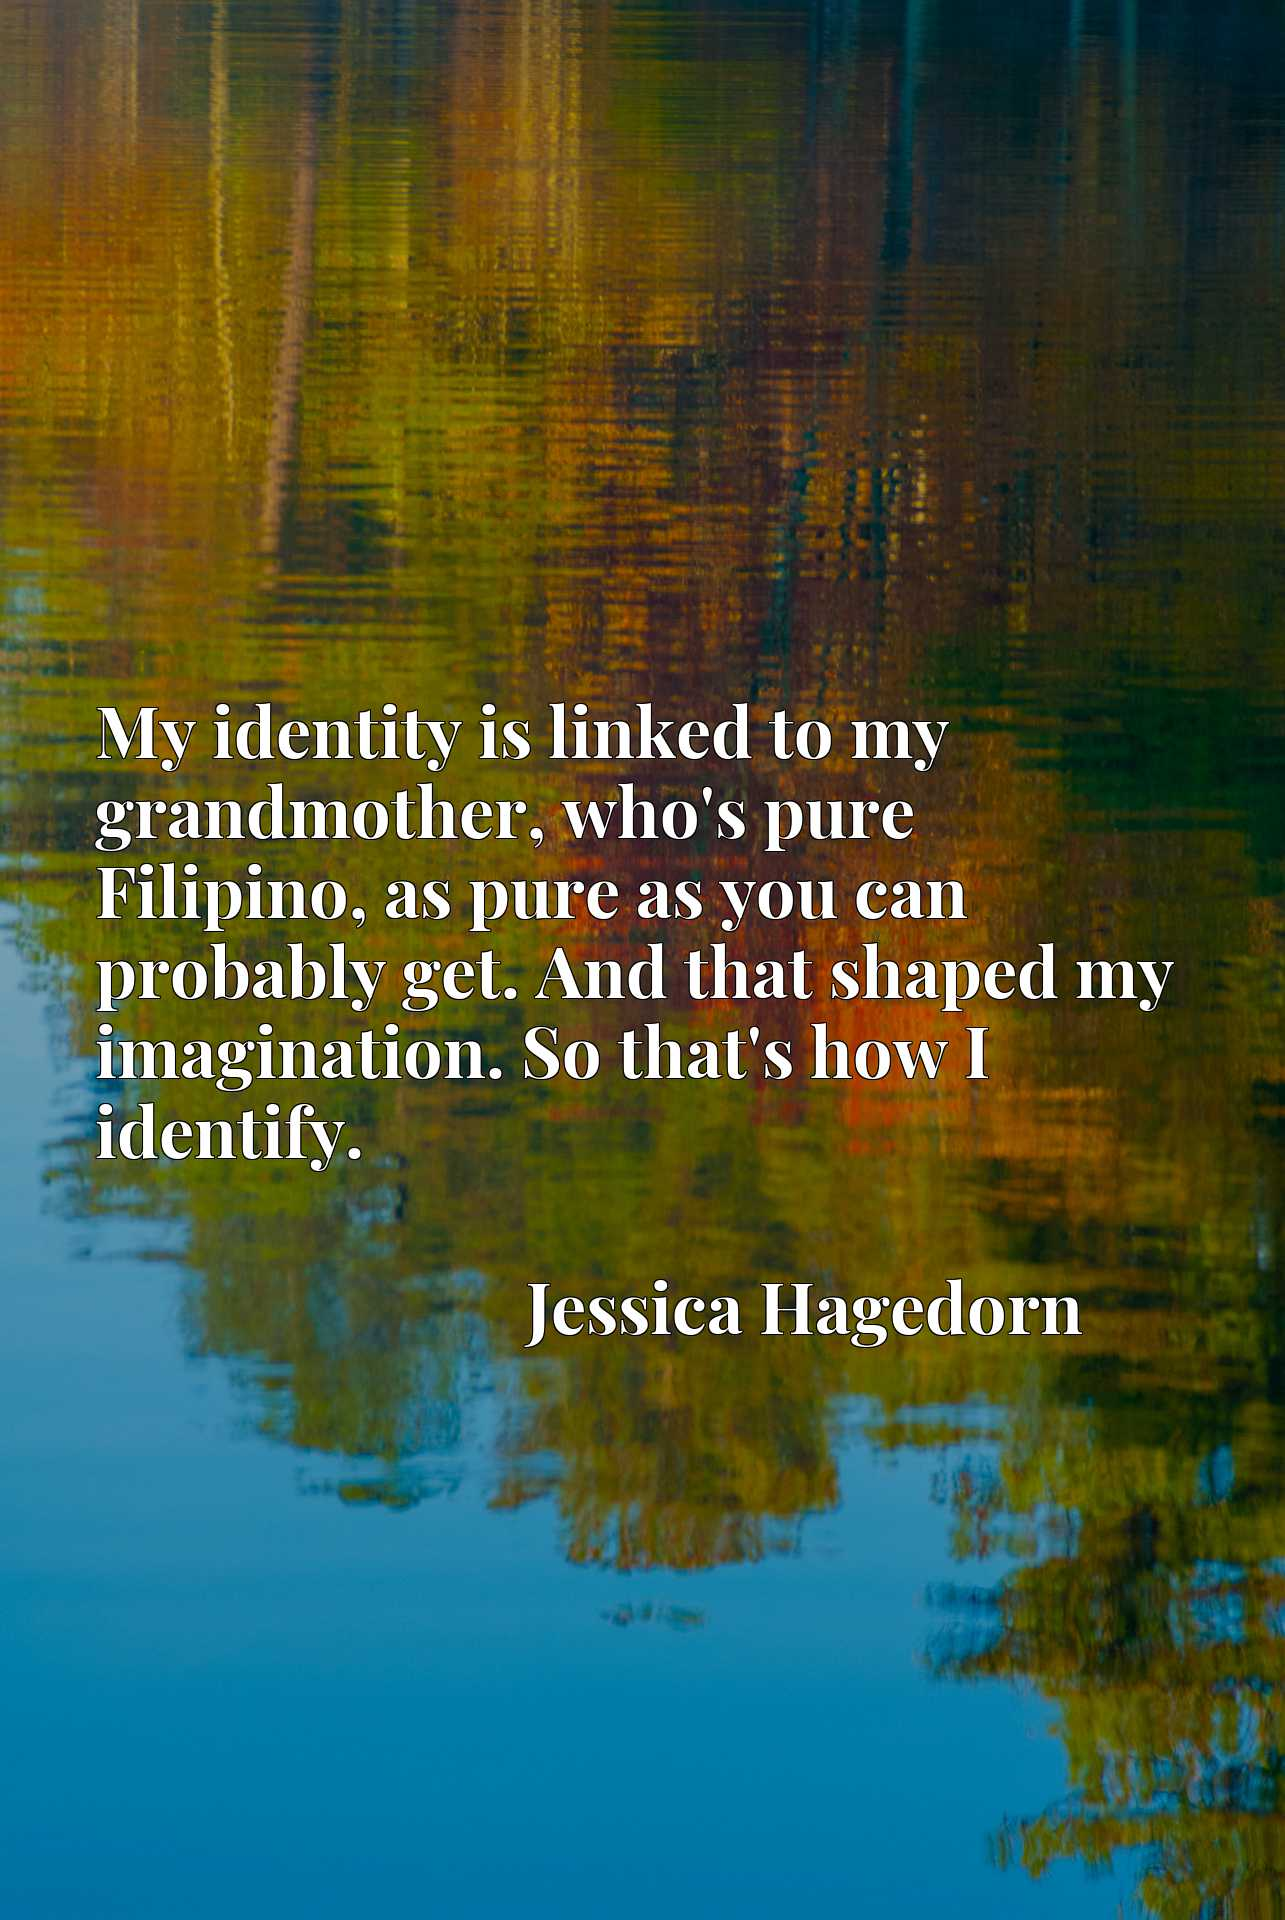 Quote Picture :My identity is linked to my grandmother, who's pure Filipino, as pure as you can probably get. And that shaped my imagination. So that's how I identify.